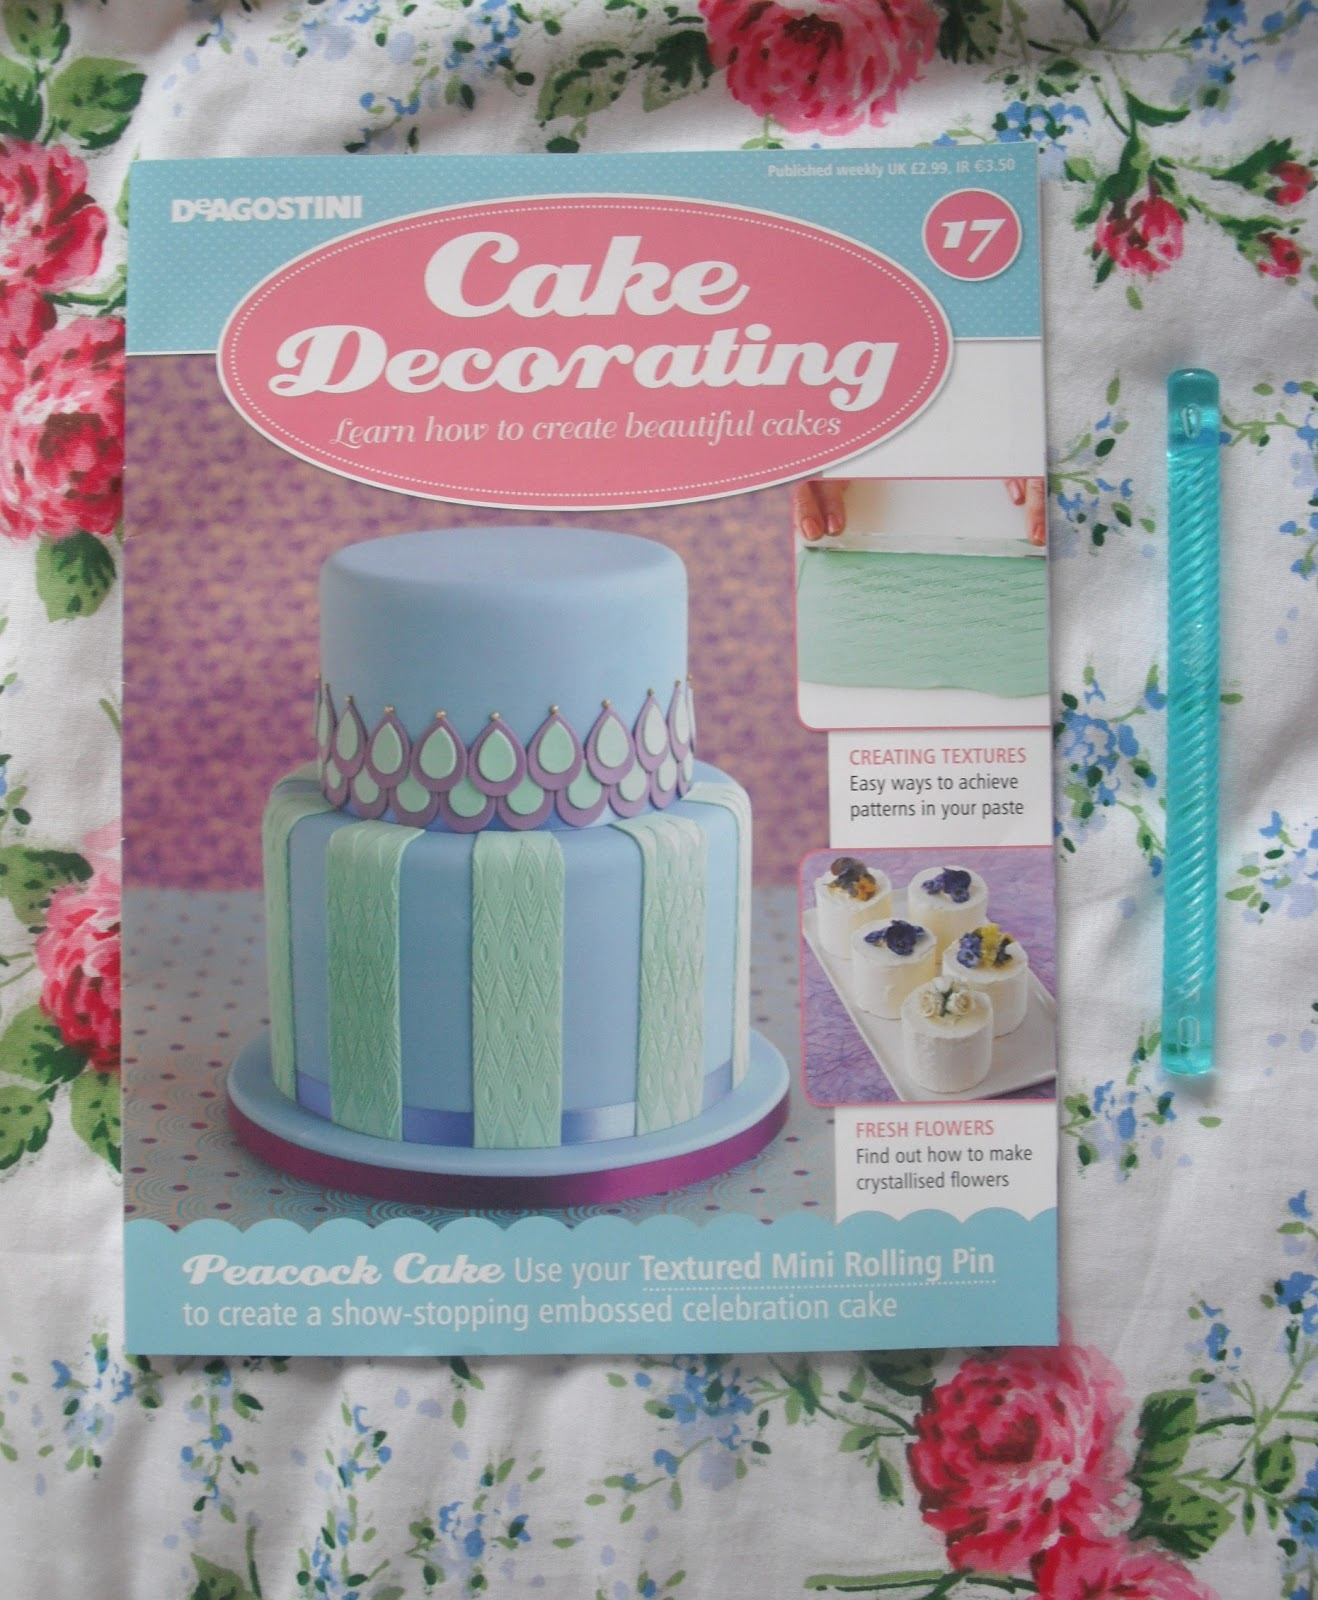 Cake Decorating Magazine Issue 17   Textured Rolling Pin     The magazine this week features how to create sugared blooms  which  requires a paste to be made from sugar and egg whites